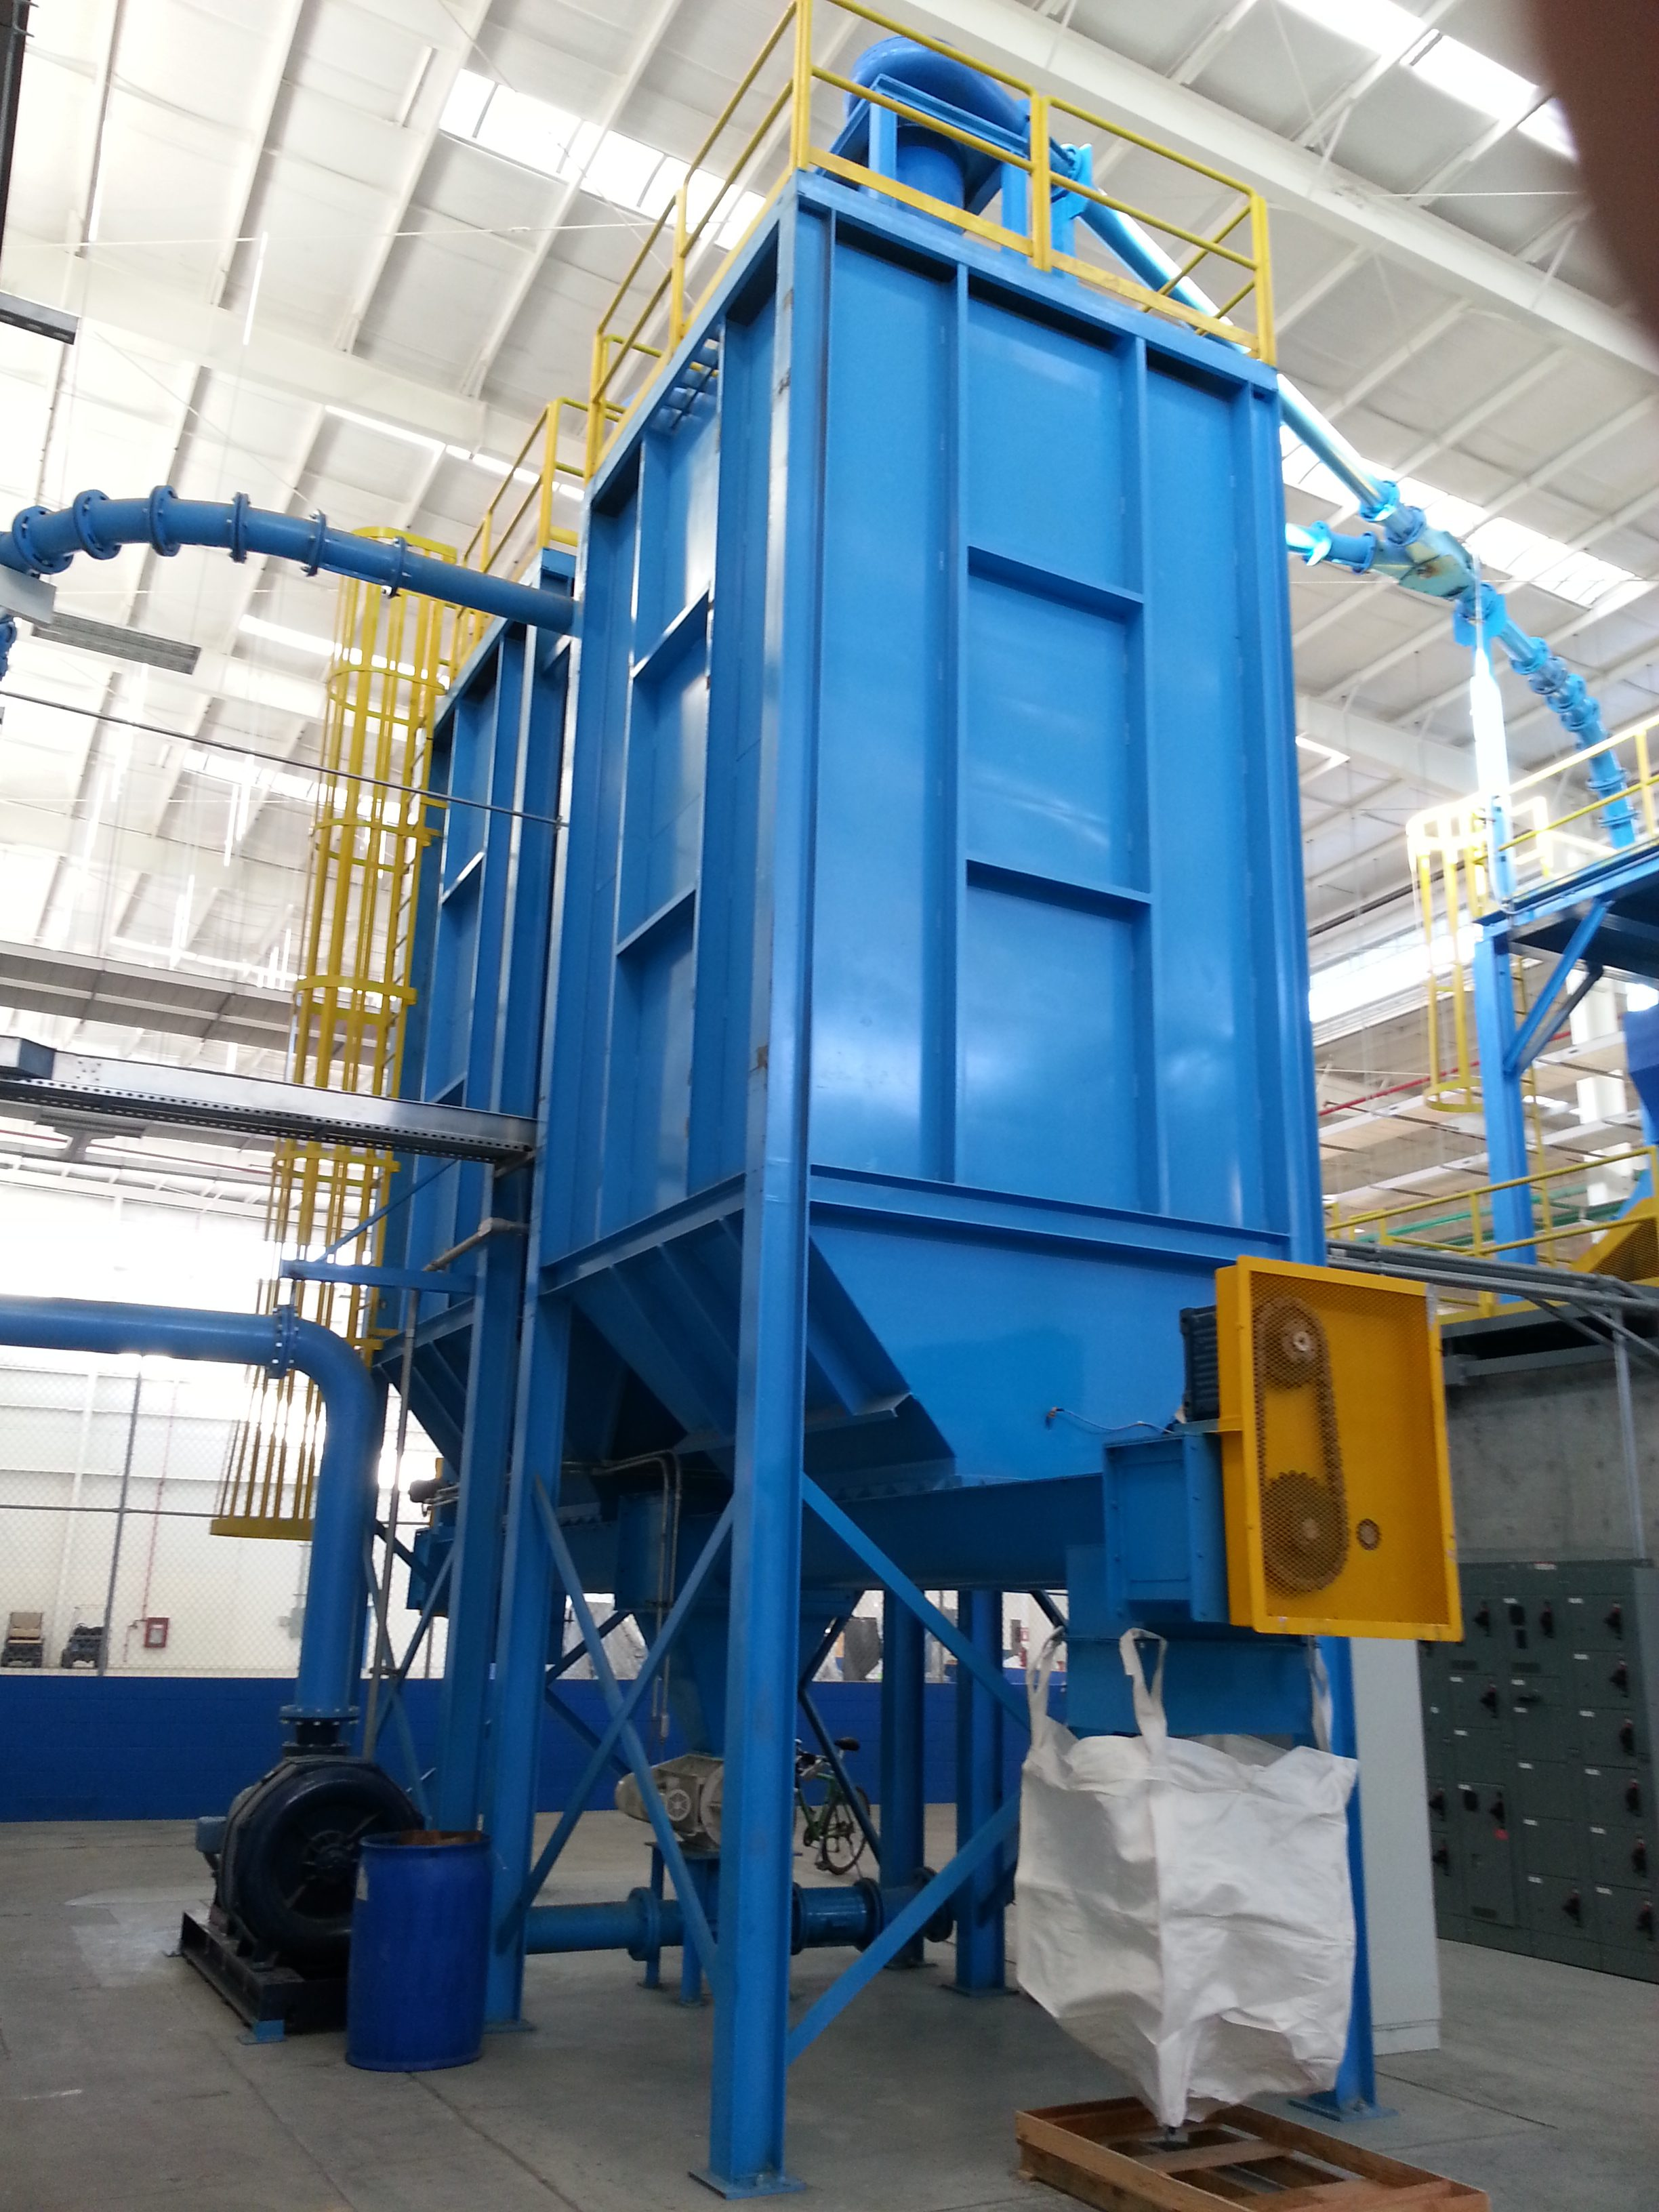 Dual Chip Storage Hoppers